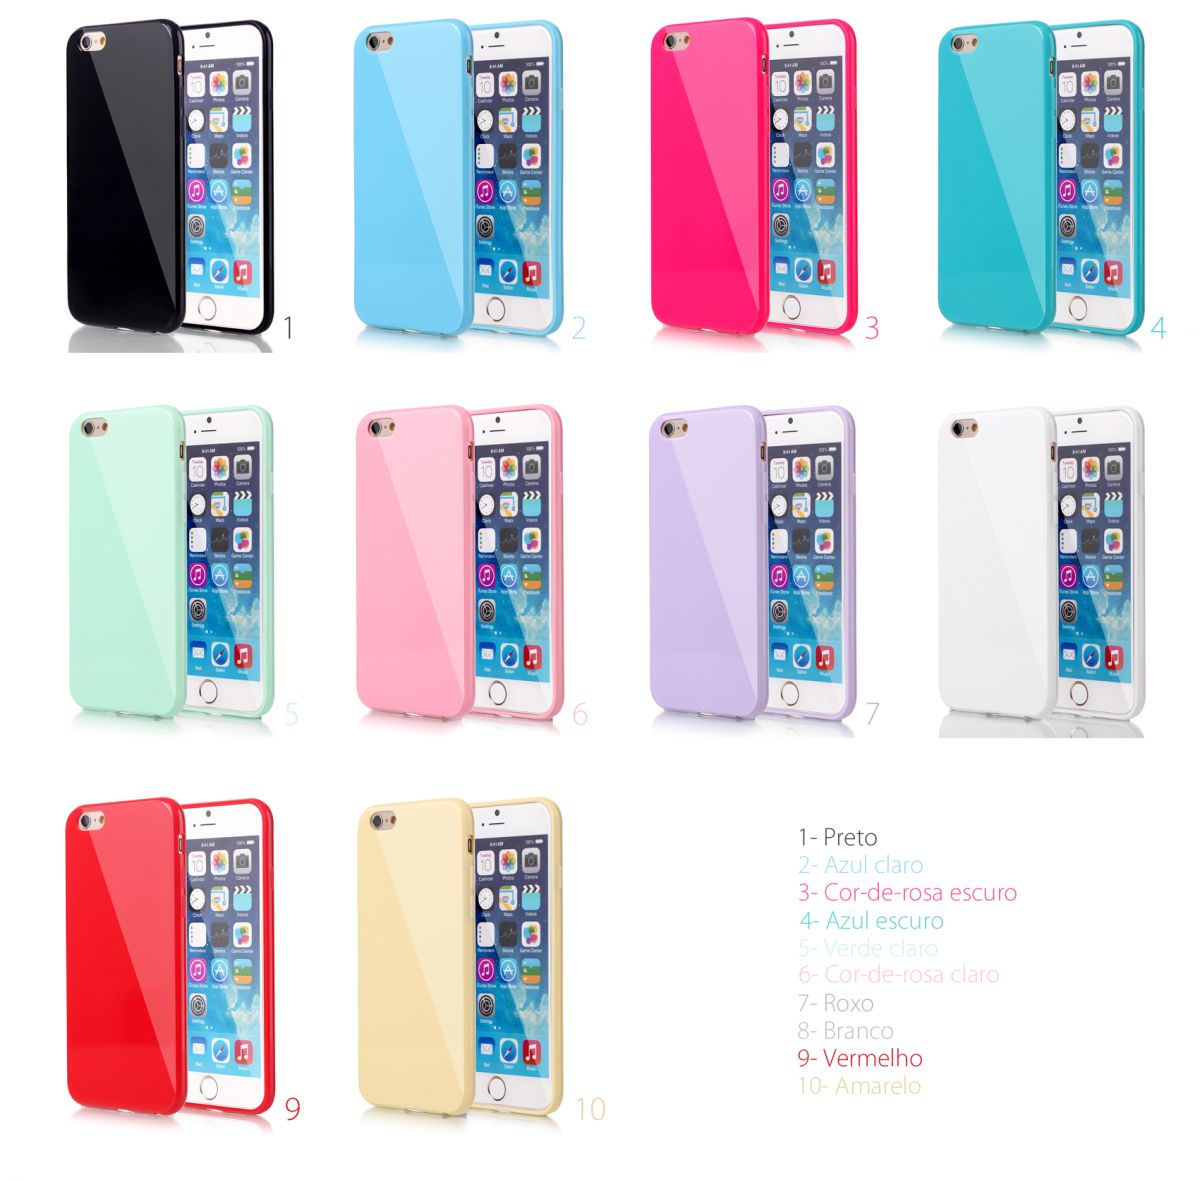 ab9ad8bab ... iPhone 6 6S Plus Capa Silicone Cores Pastel Gloss